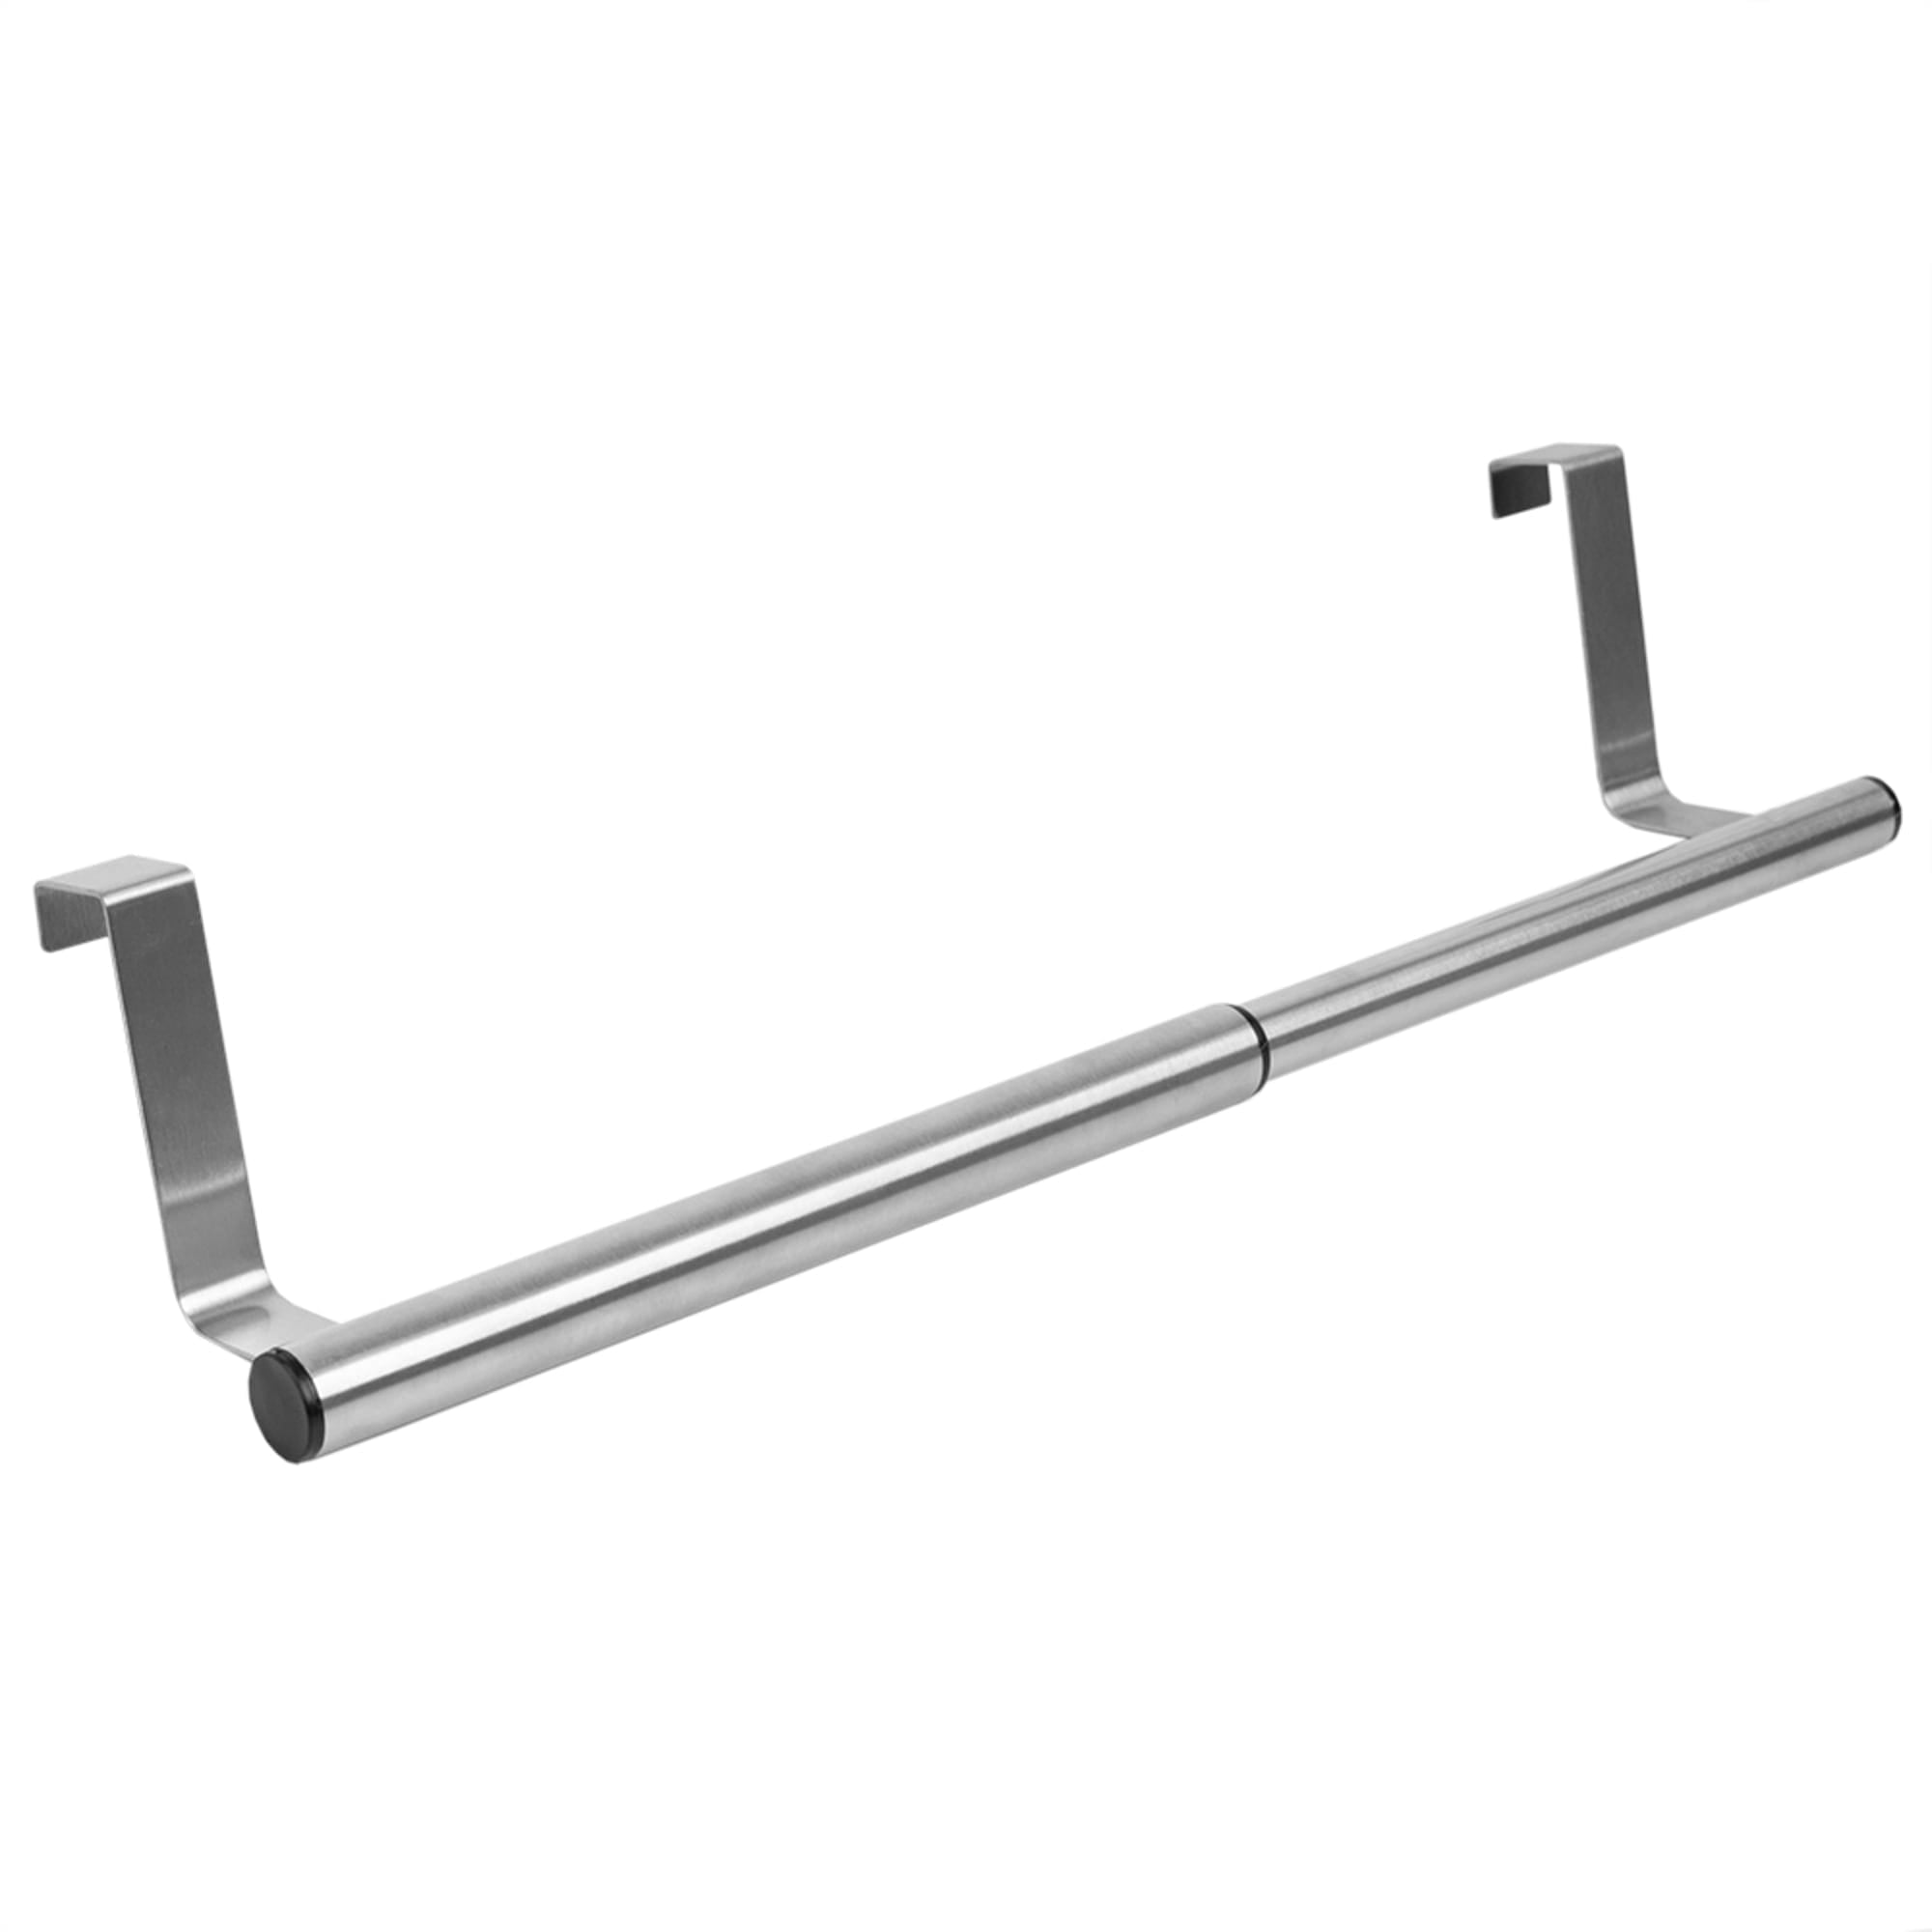 Over the Cabinet Door Quick Install Hanging Modern Expandable Steel Towel Storage Rack, Chrome